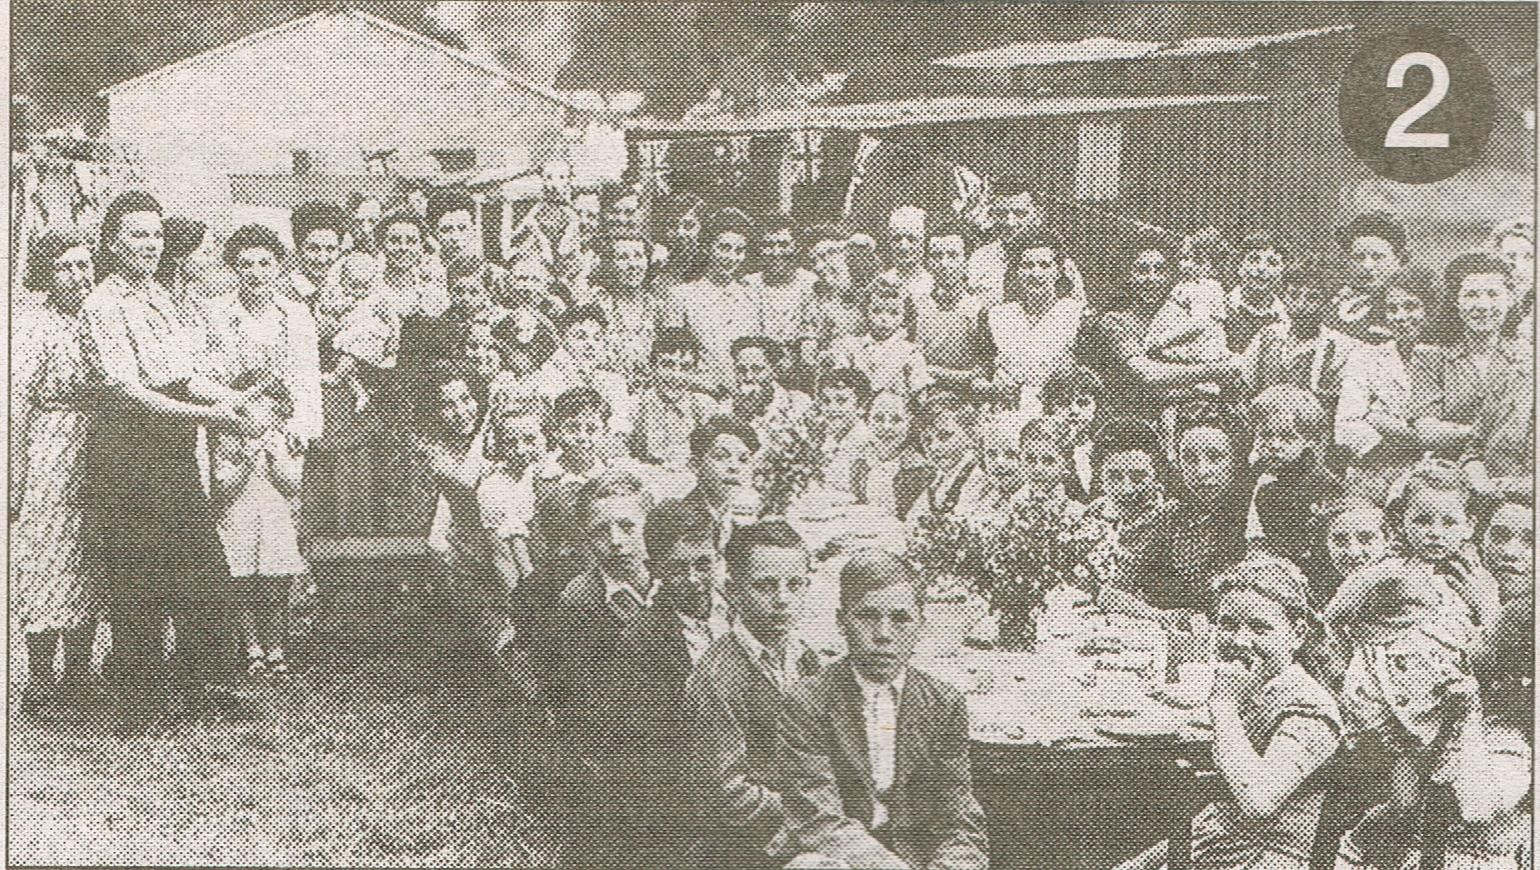 Children's tea party, 1940, Whitbread's hop farm, Beltring, Kent  .jpg